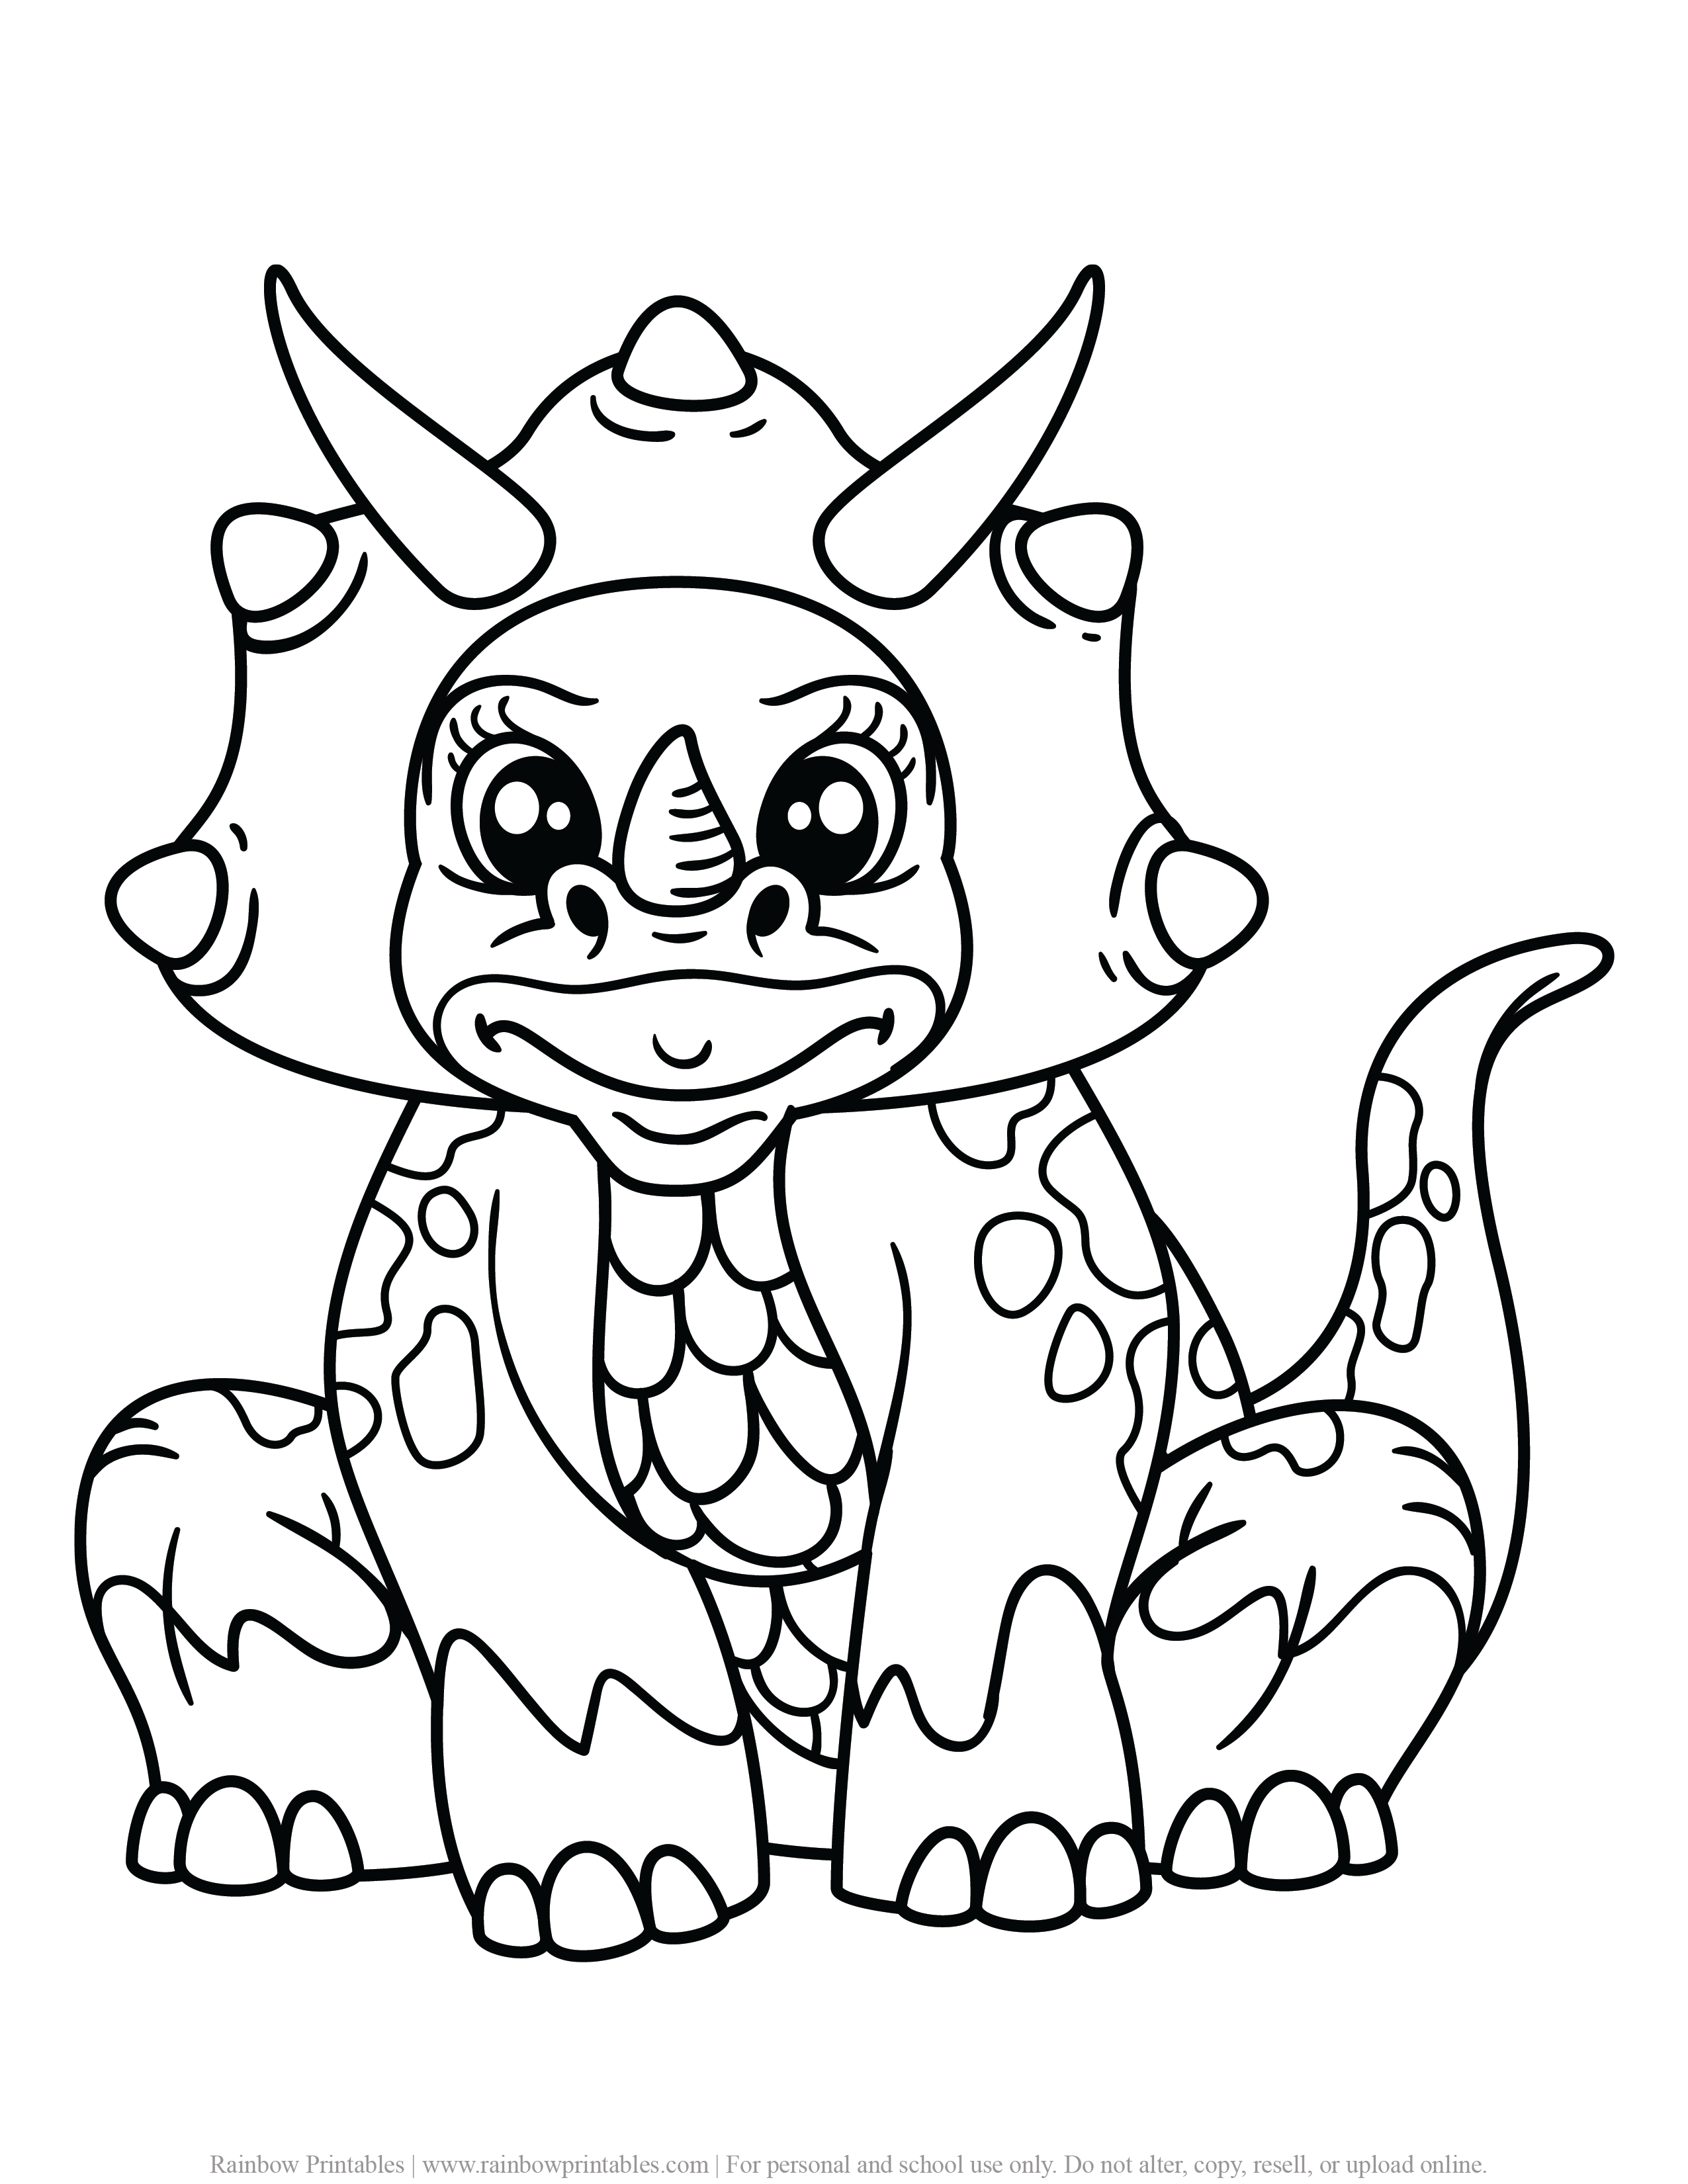 FREE DINOSAUR COLORING PAGES ACTIVITY FOR KIDS AND BOYS DINO DRAGON PRINTABLE-12